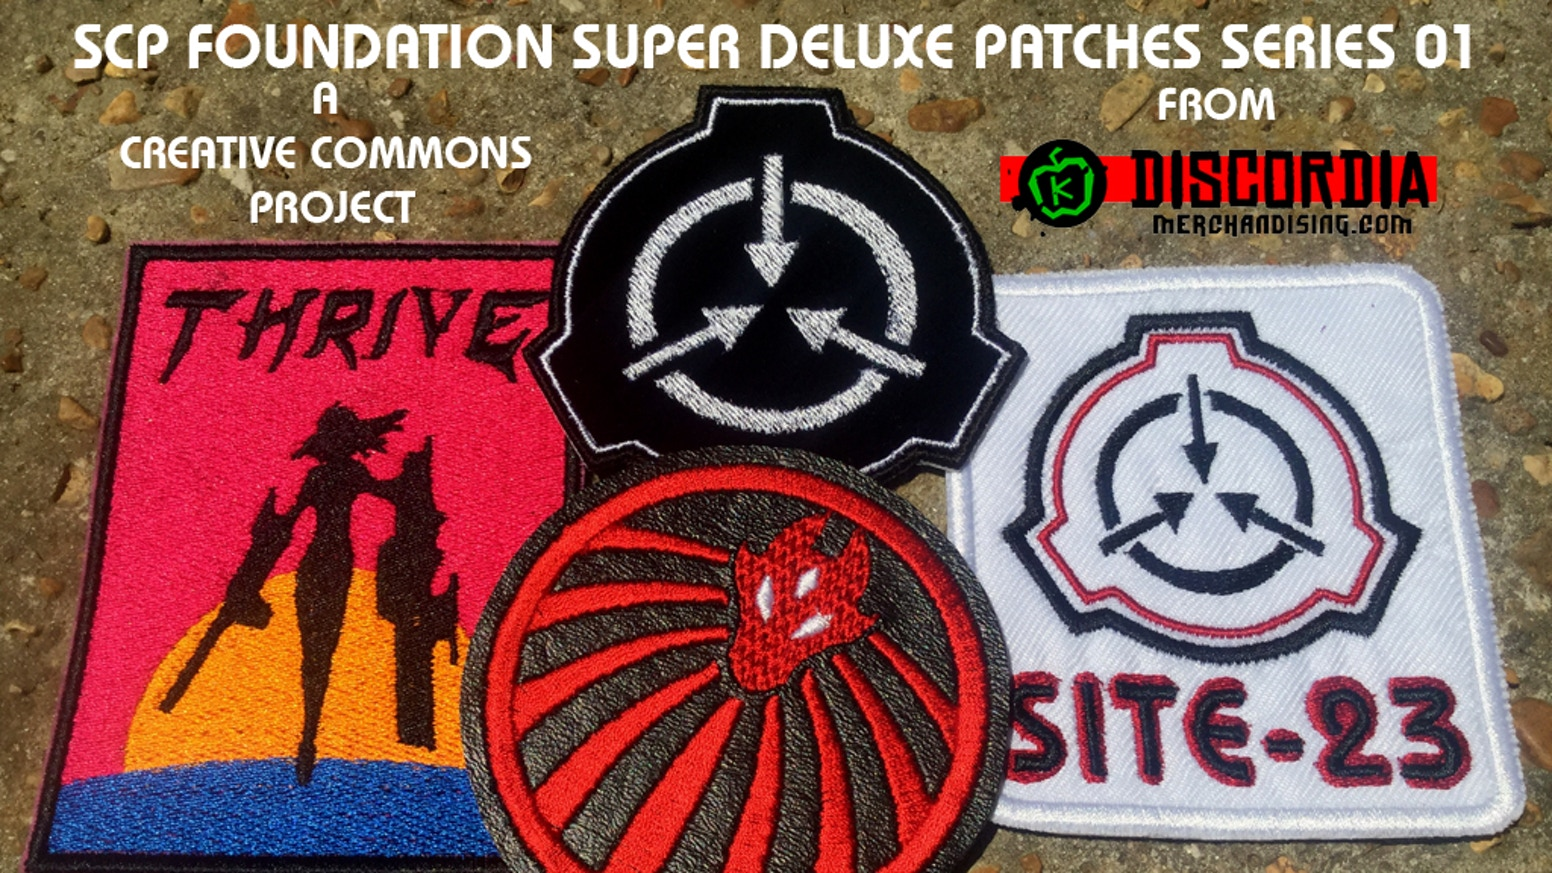 SCP Embroidered Patches on various unique fabrics. A Creative Commons Project - CC 3.0 BY-SA-US. From Discordia Merchandising.